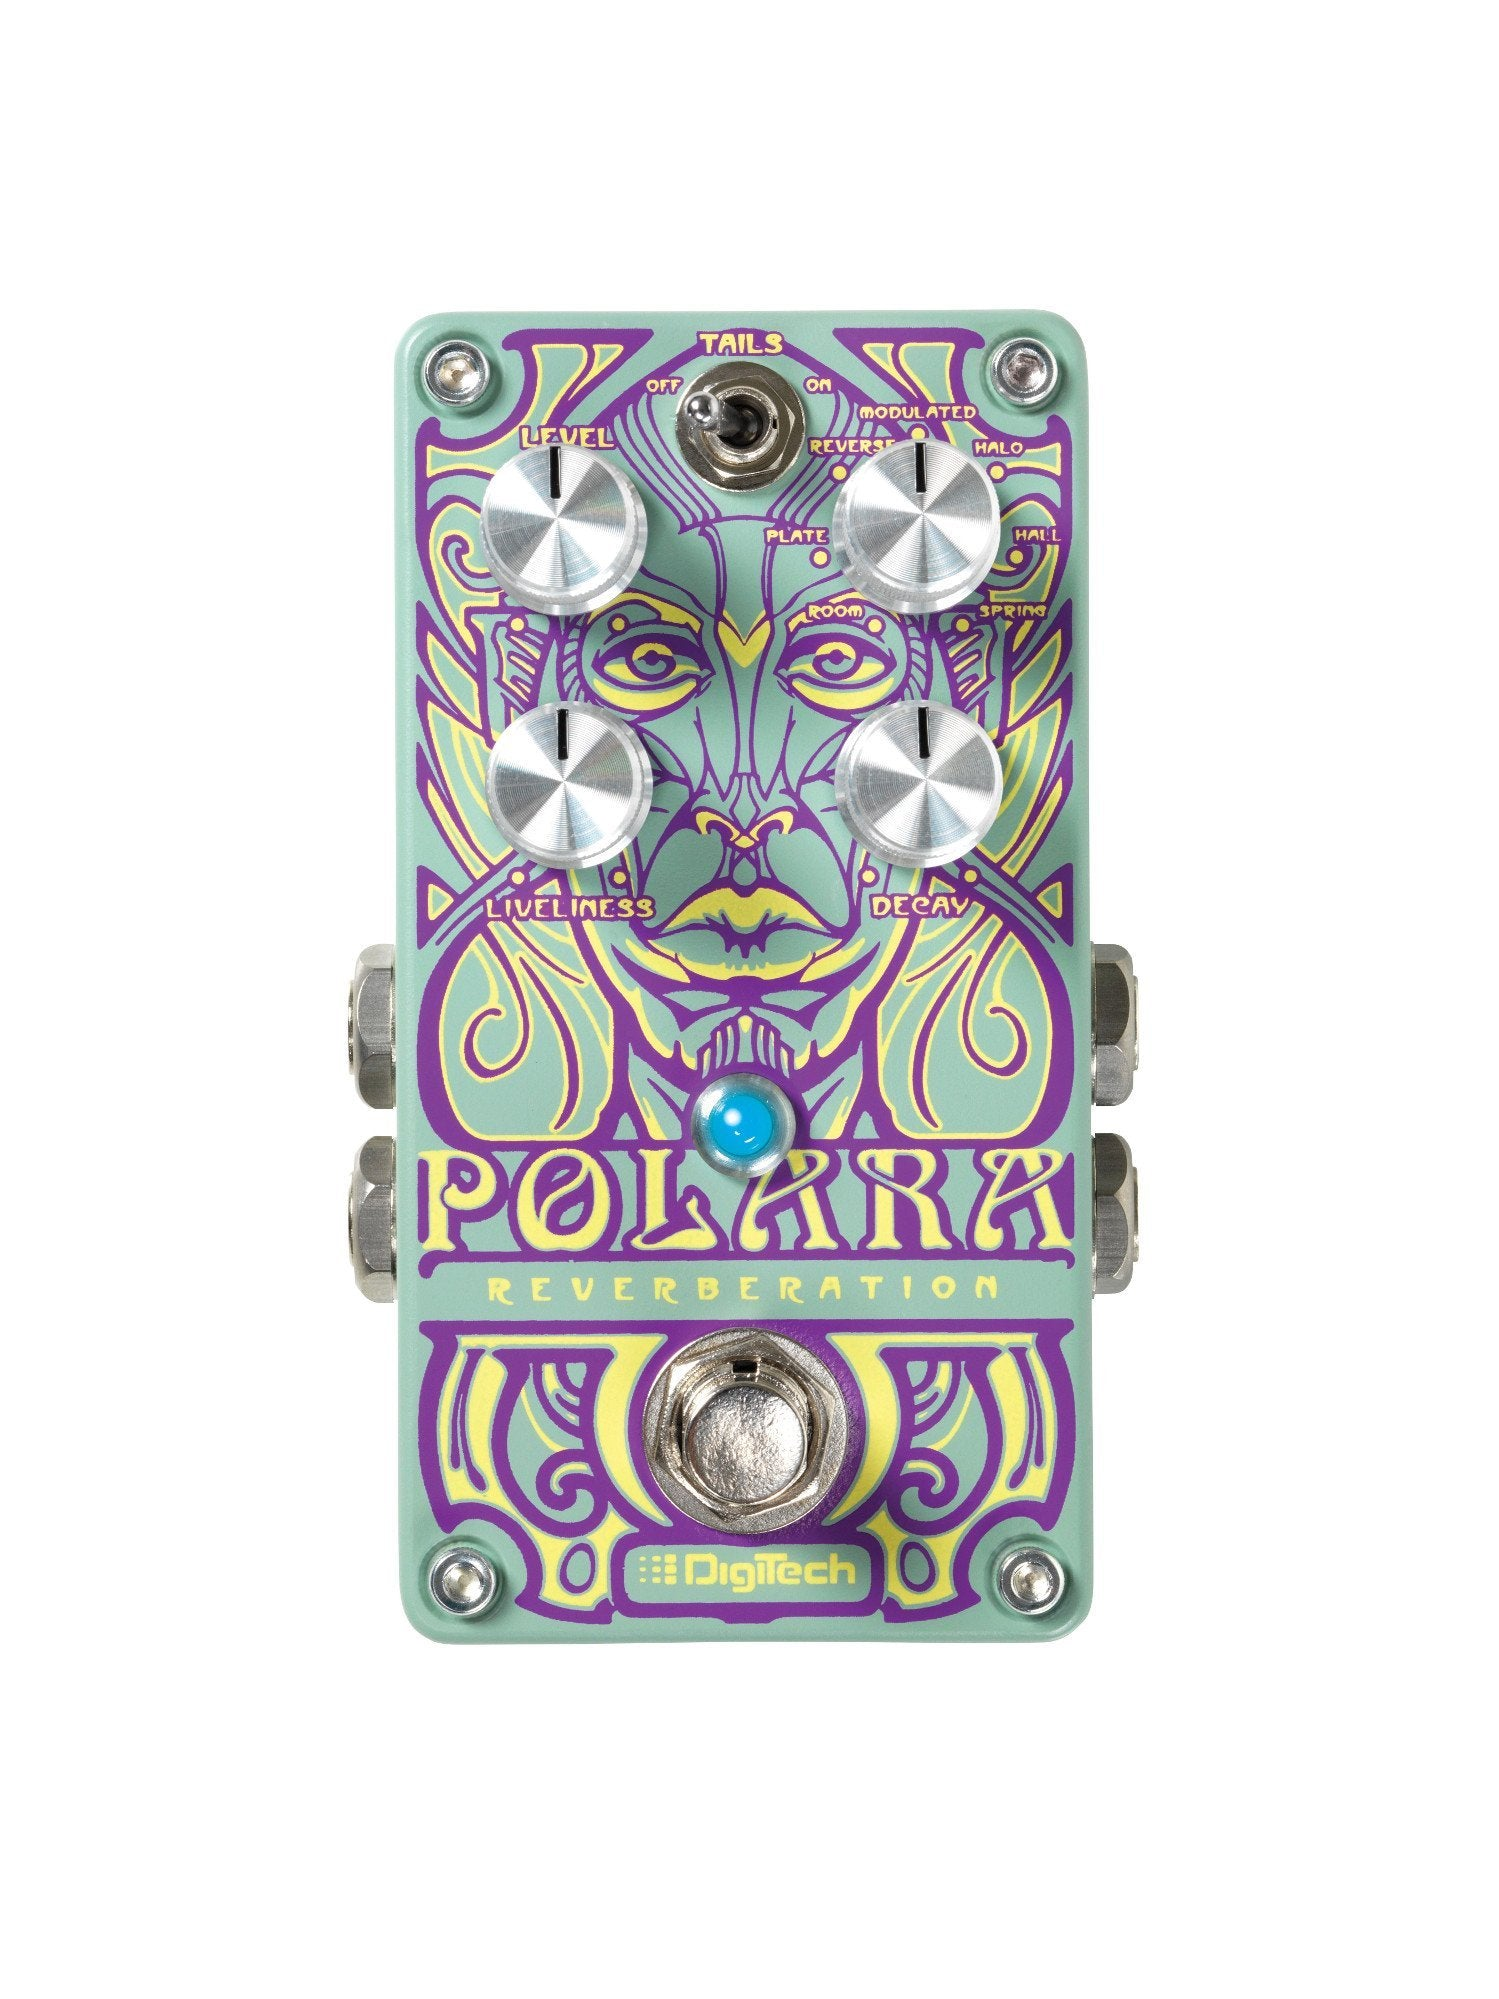 DigiTech Polara Lexicon Reverb Effects Pedal